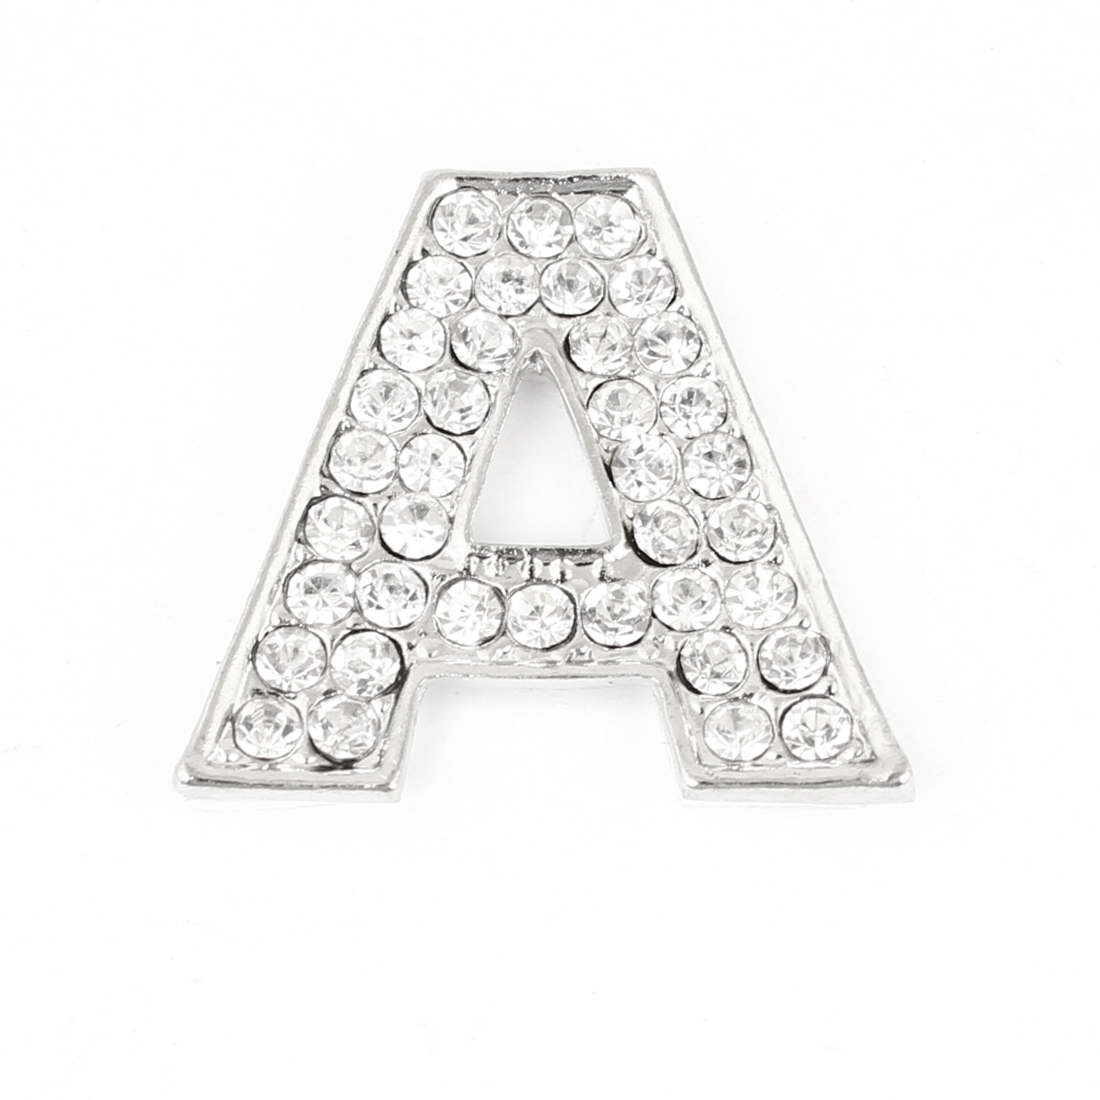 X Autohaux Bling Rhinestones Inlaid Silver Tone Letter A Shaped Car Sticker  Decoration-in Car Stickers from Automobiles   Motorcycles on Aliexpress.com  ... 496efd8df8bb